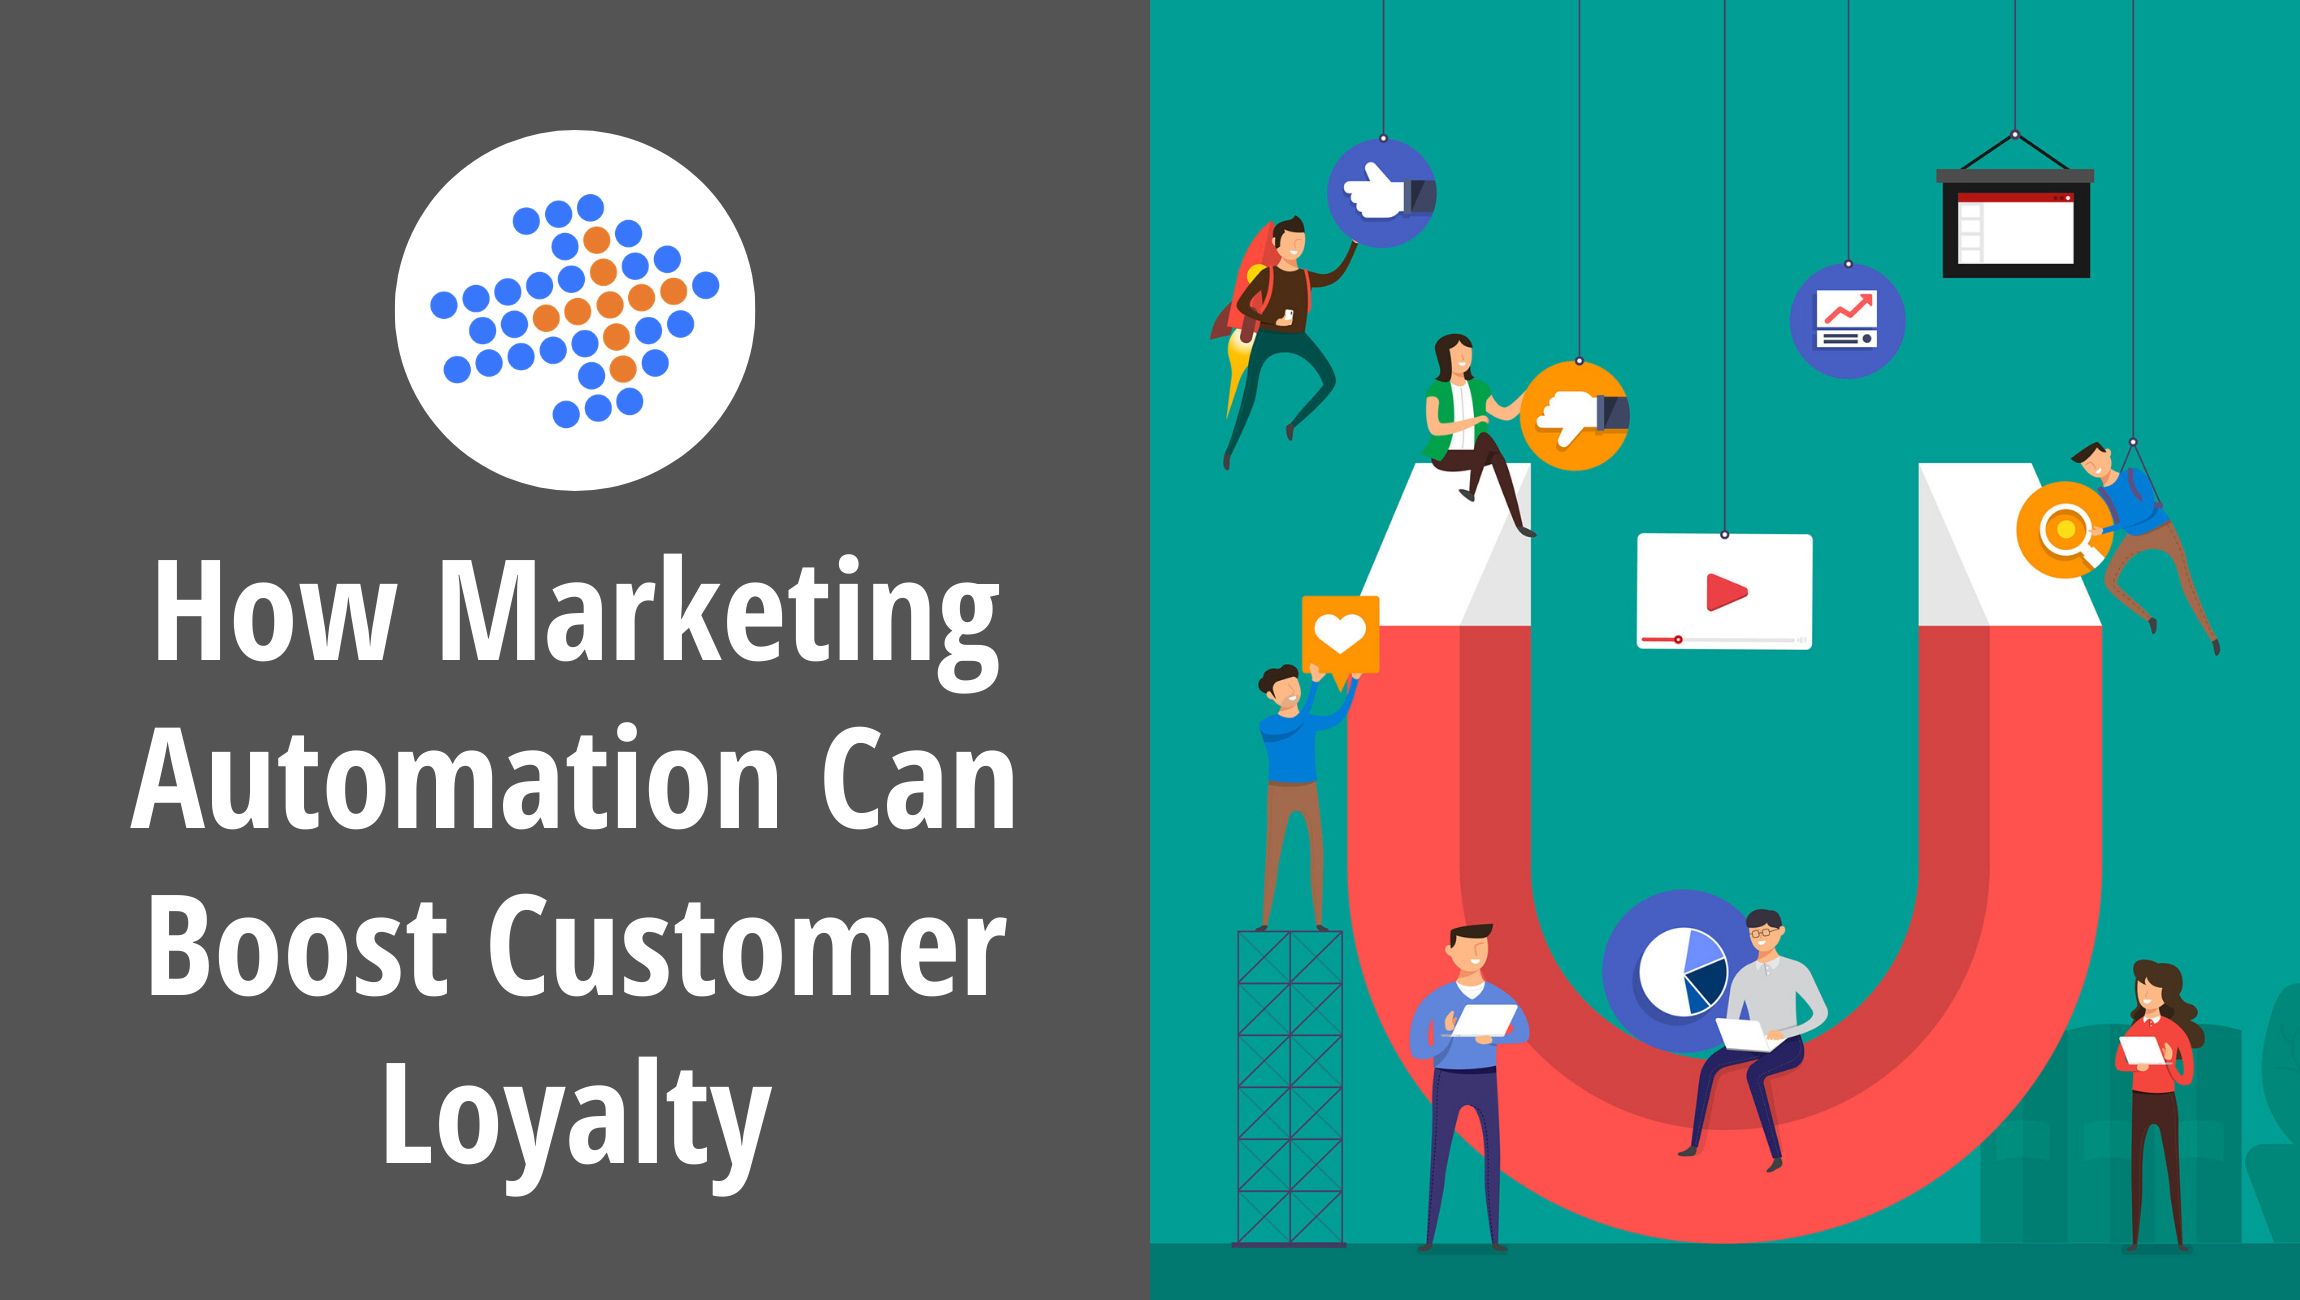 How Marketing Automation Can Boost Customer Loyalty